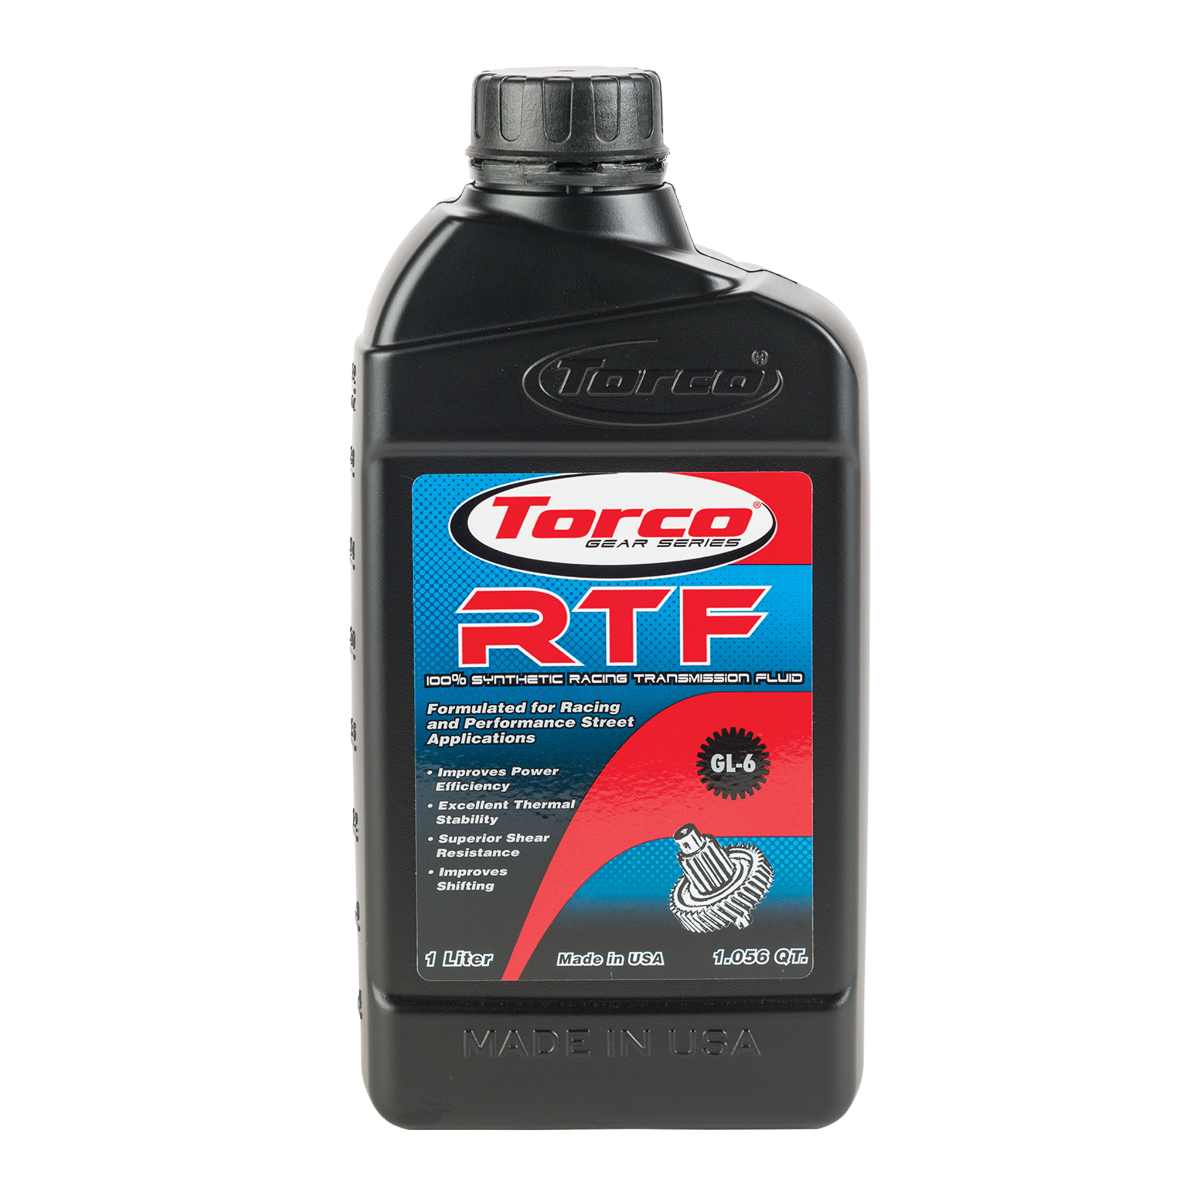 Racing Transmission Fluid RTF - TorcoUSA